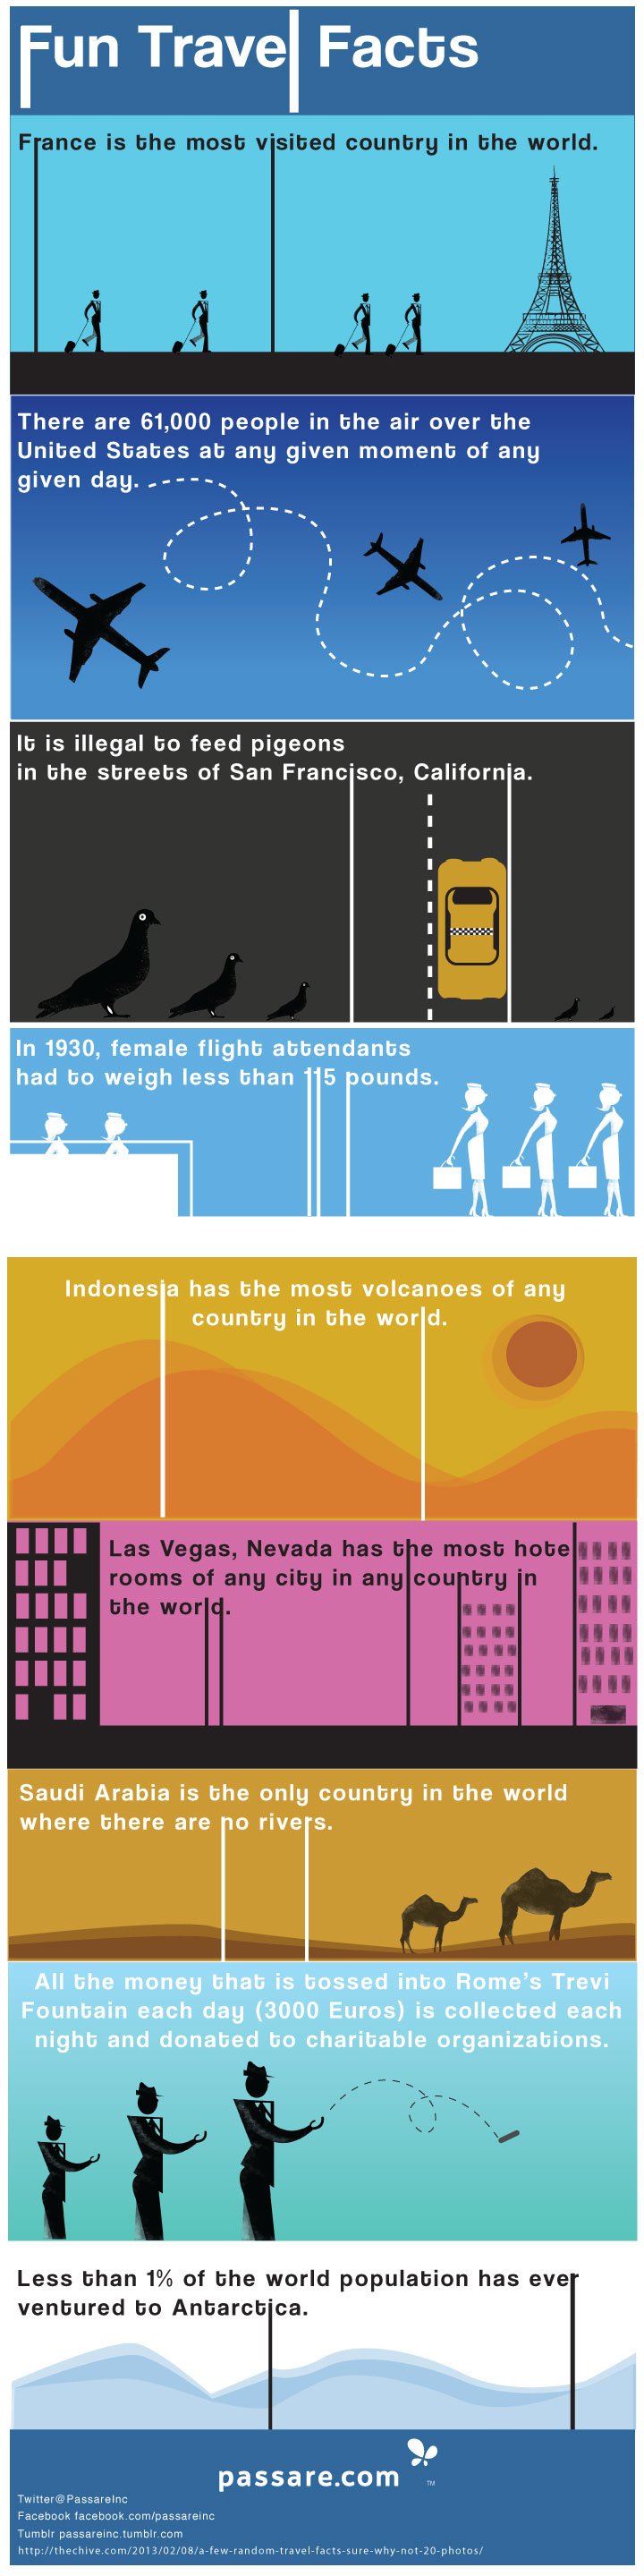 01 Fun-Travel-Facts-Passare